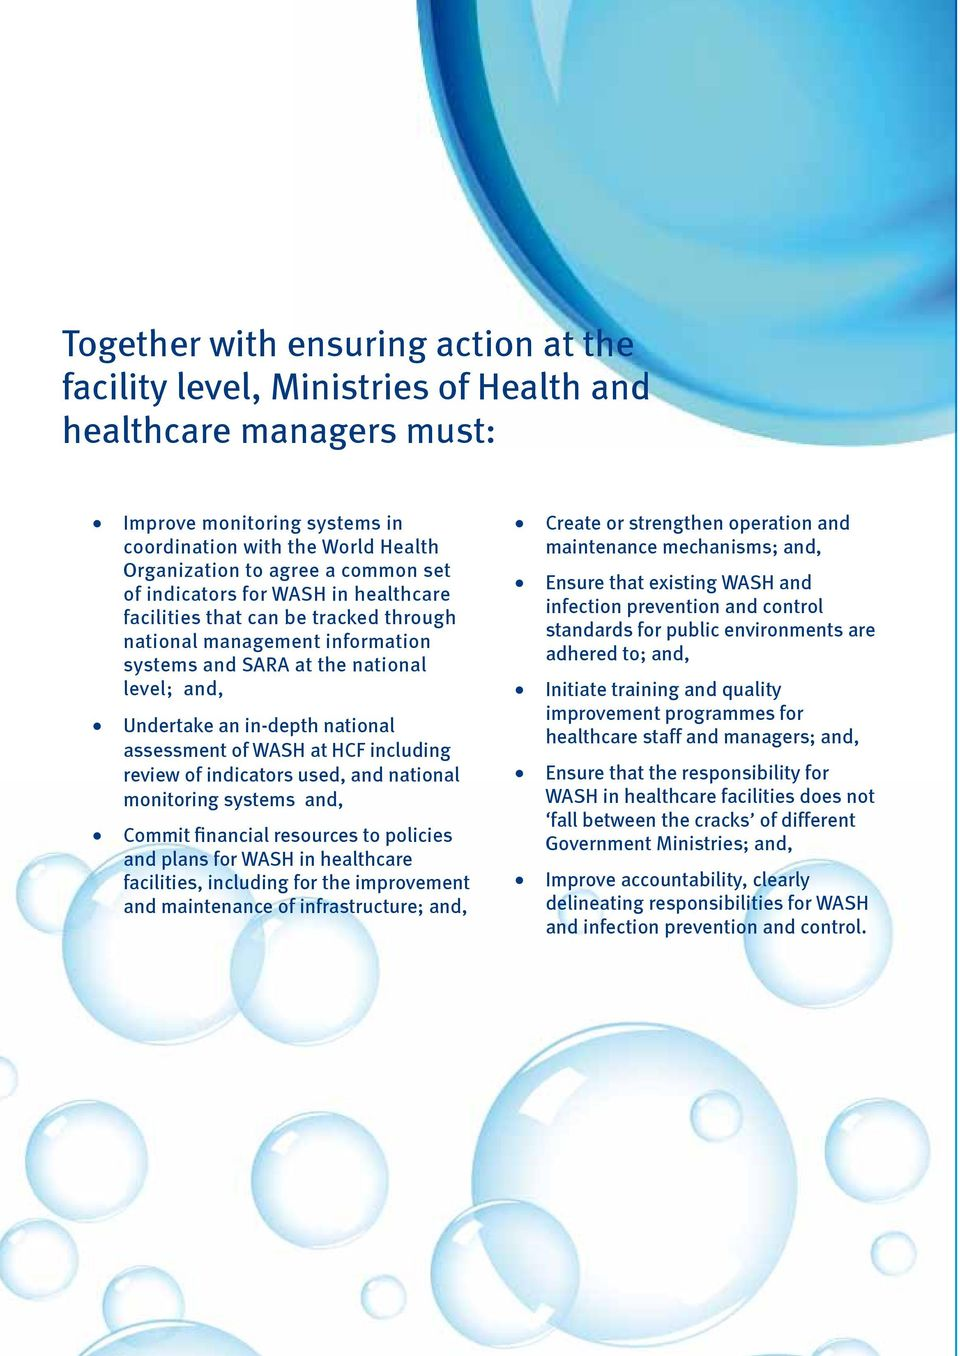 of WASH at HCF including review of indicators used, and national monitoring systems and, Commit financial resources to policies and plans for WASH in healthcare facilities, including for the